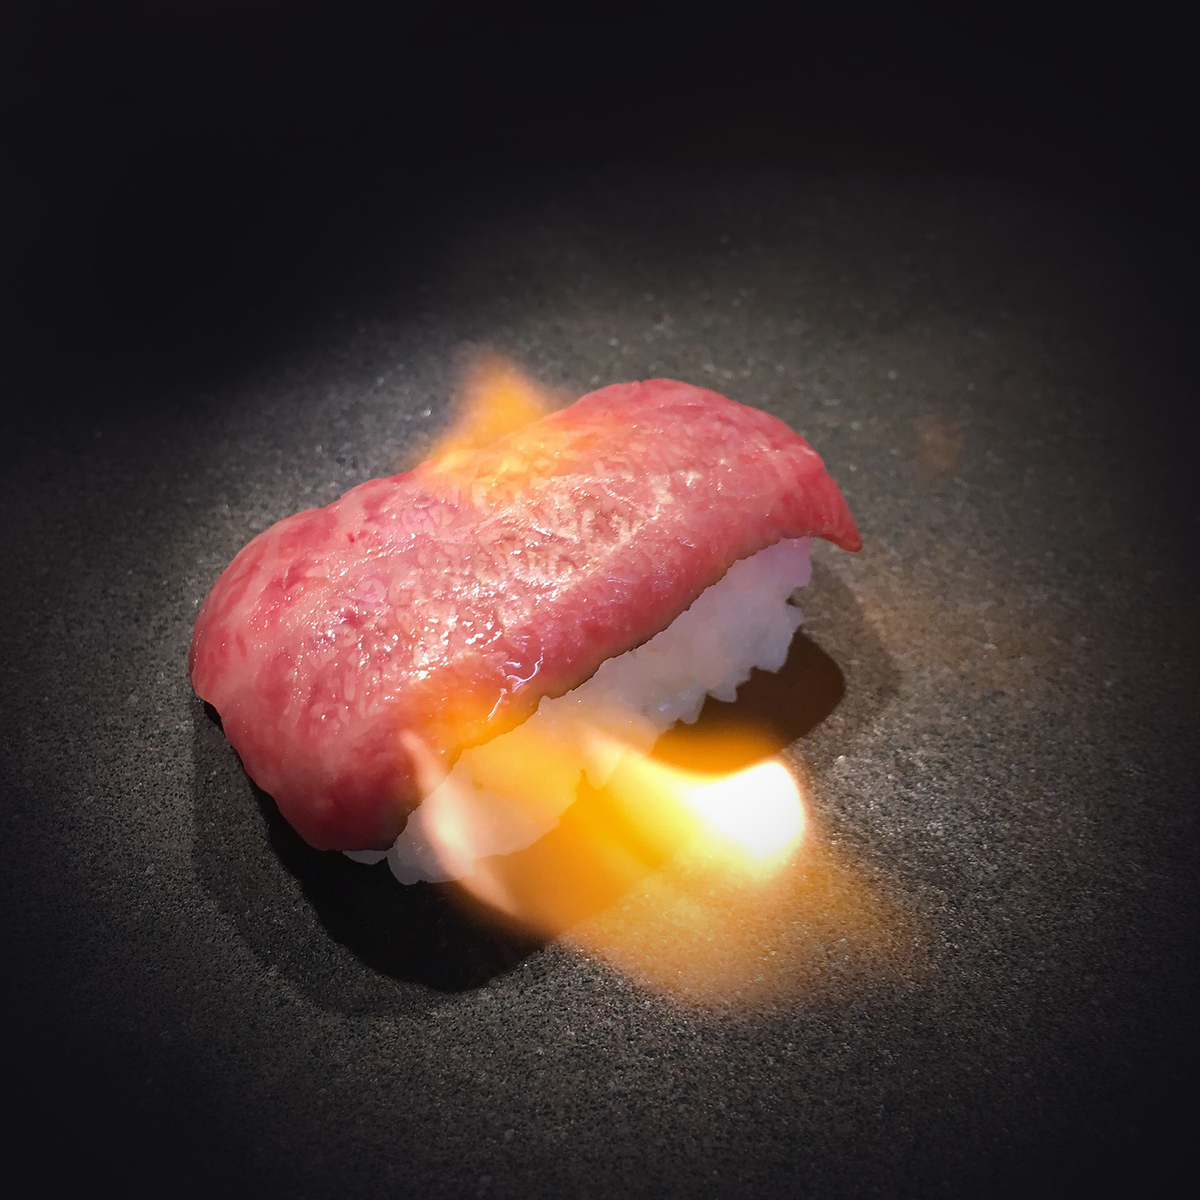 Broiled sushi with black wagyu beef